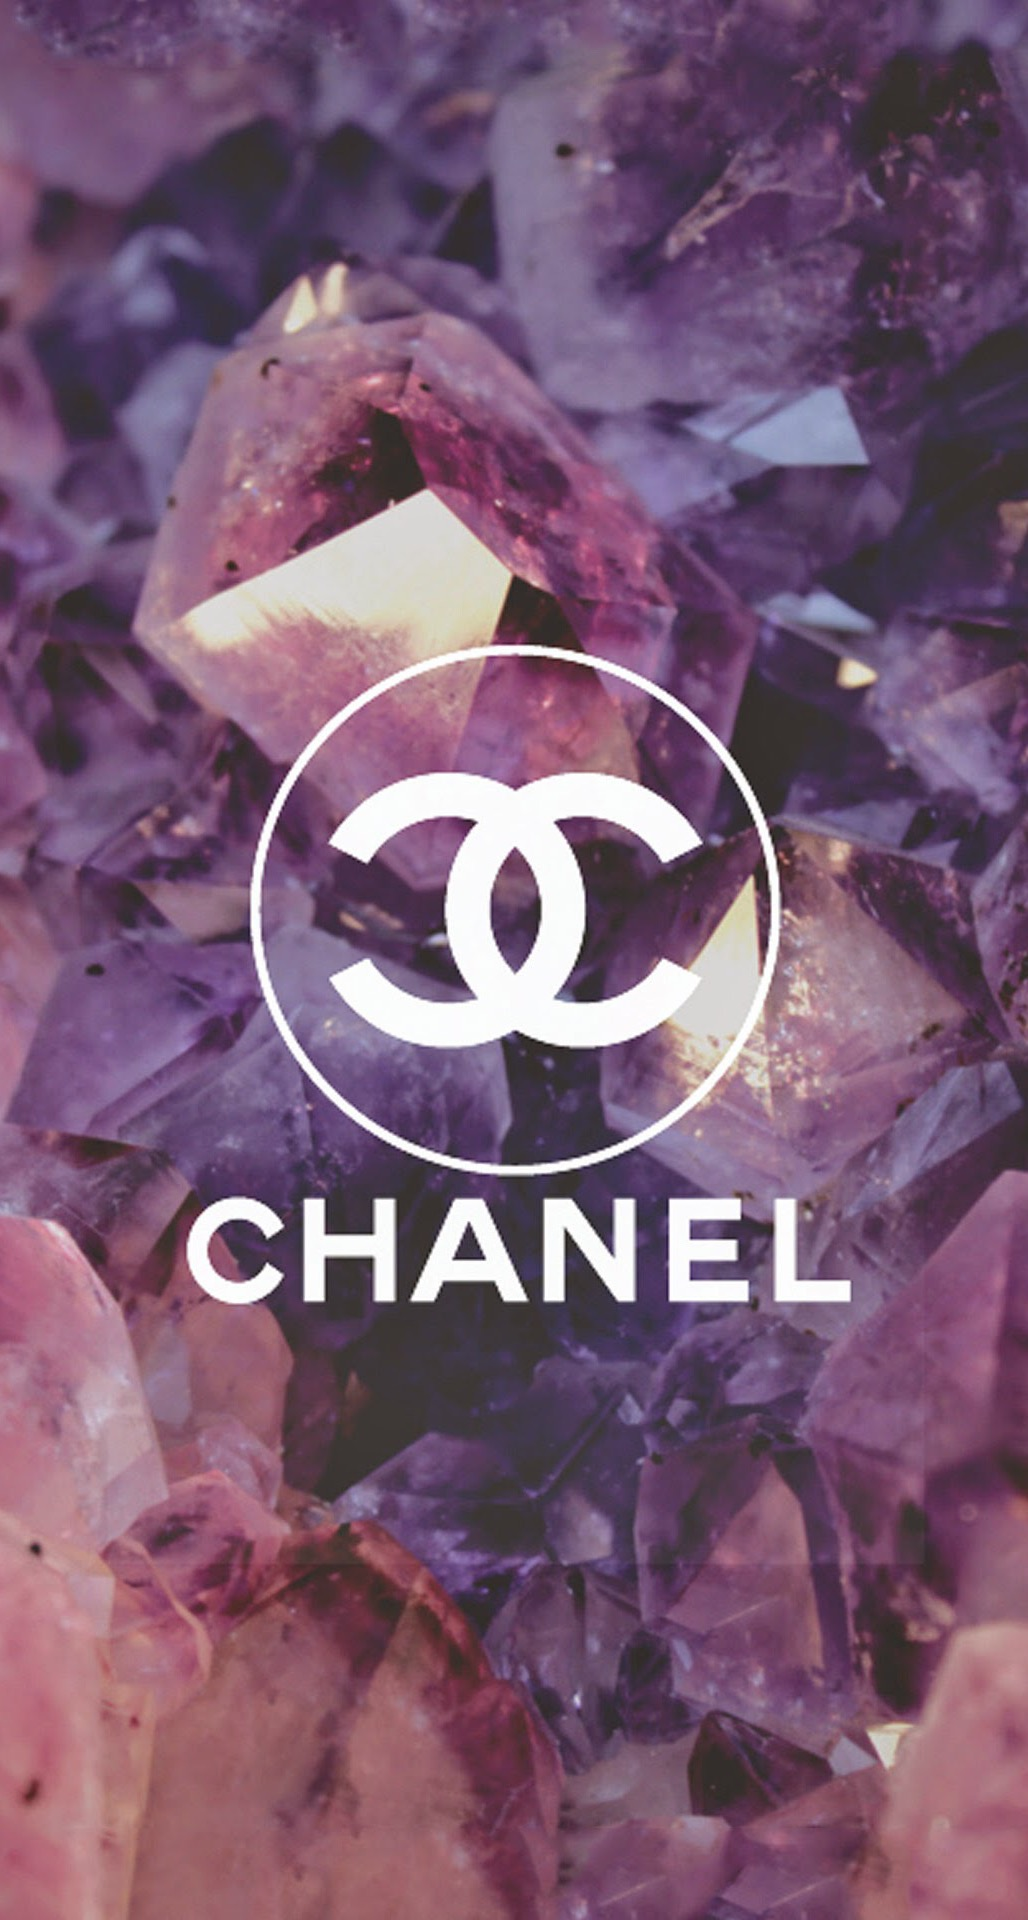 Coco-Chanel-Logo-Diamonds-iPhone-Plus-HD-wallpaper-wp5006153